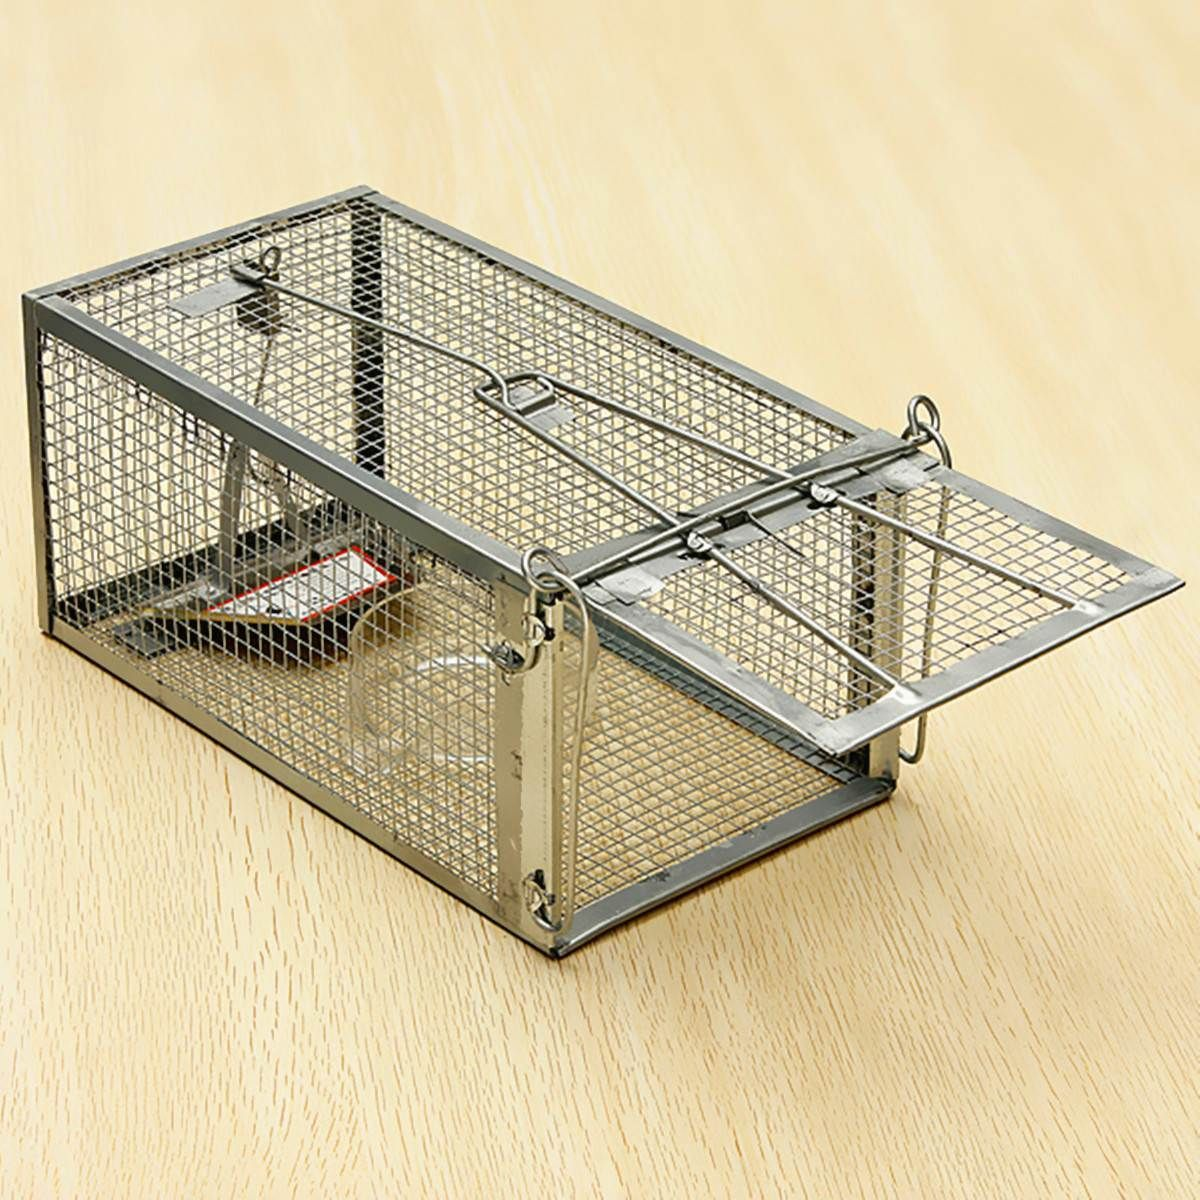 Reusable Hamster Cage Mice Rat Control Catch Bait Live Trap Rodent Animal Mouse Hamster Cage Pet Mice Rat Control